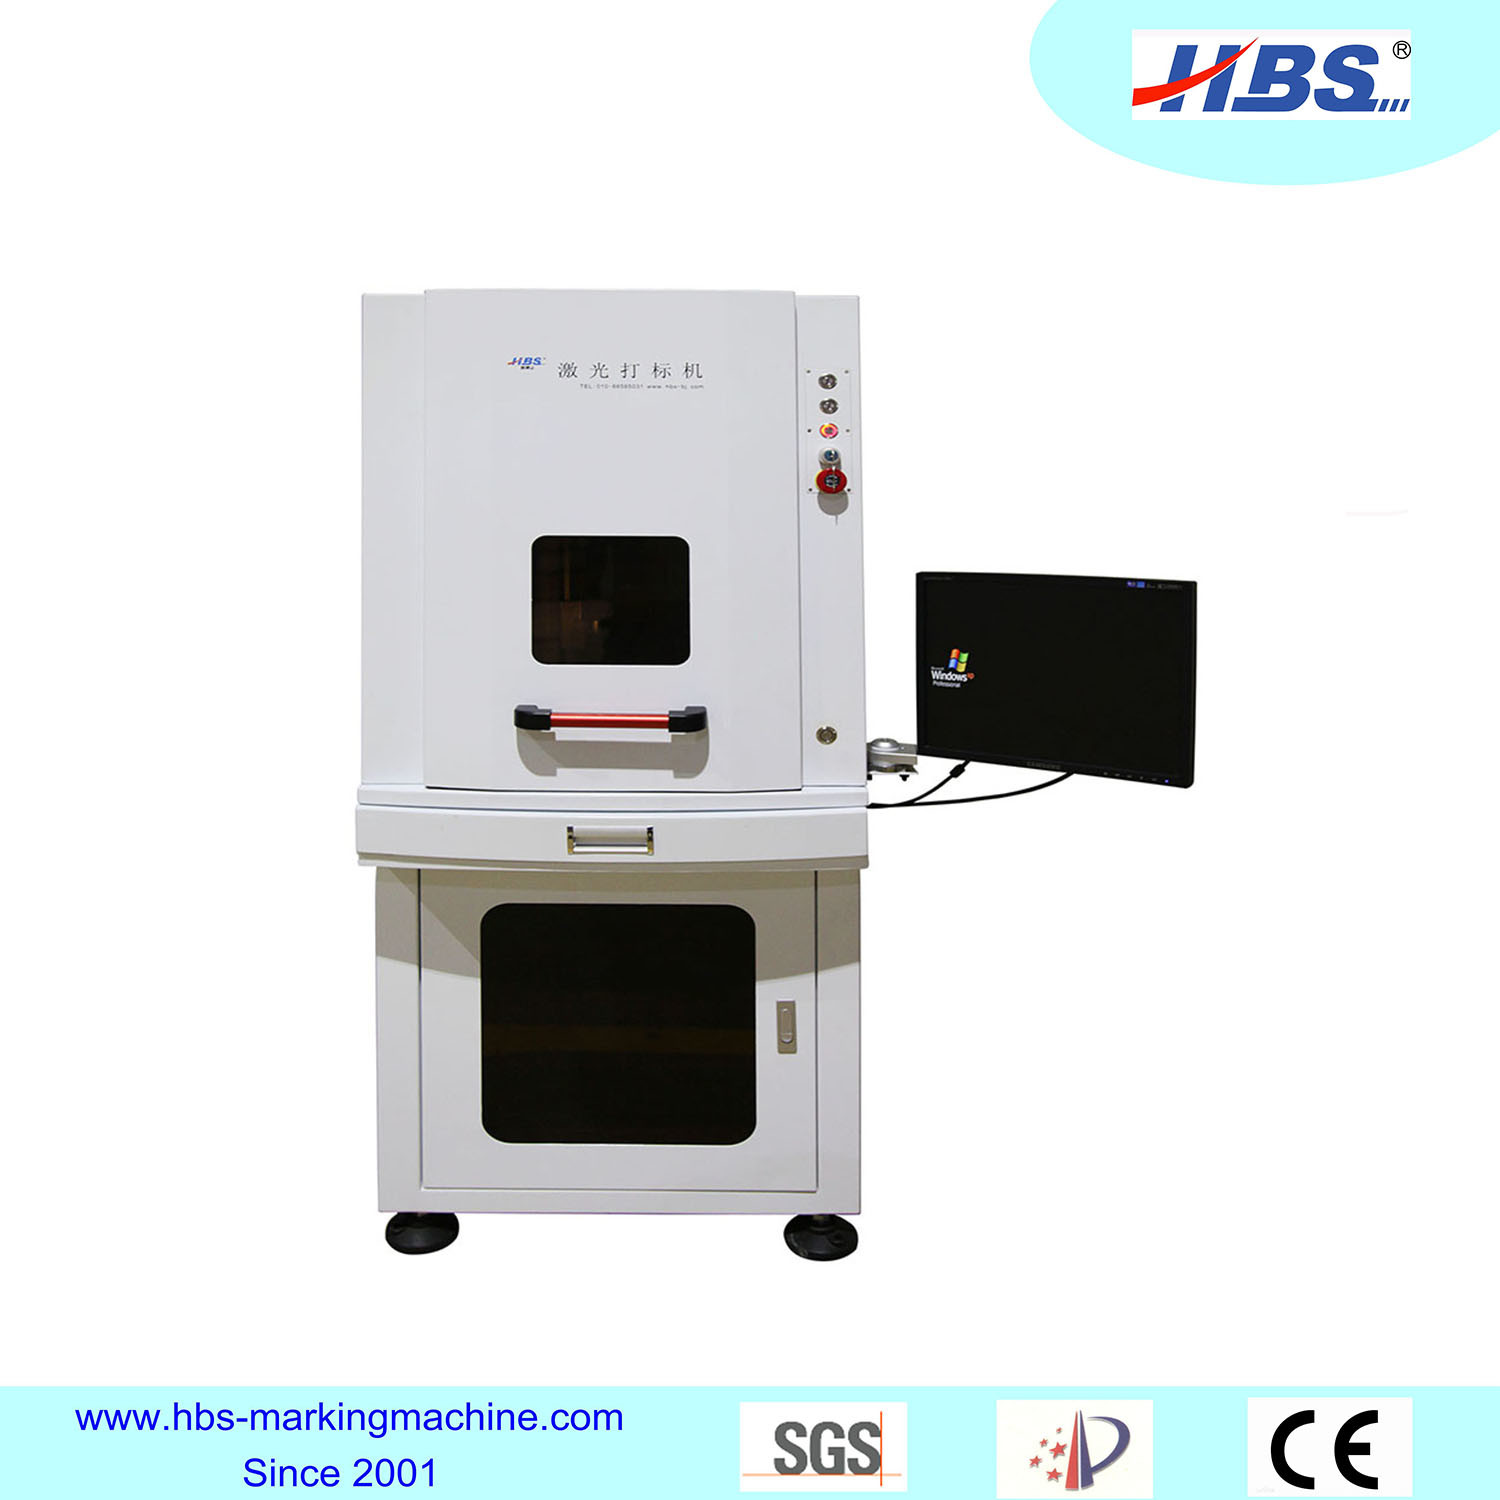 New Generation 20W Fiber Laser Marking Machine with Fully Enclosed Cabint